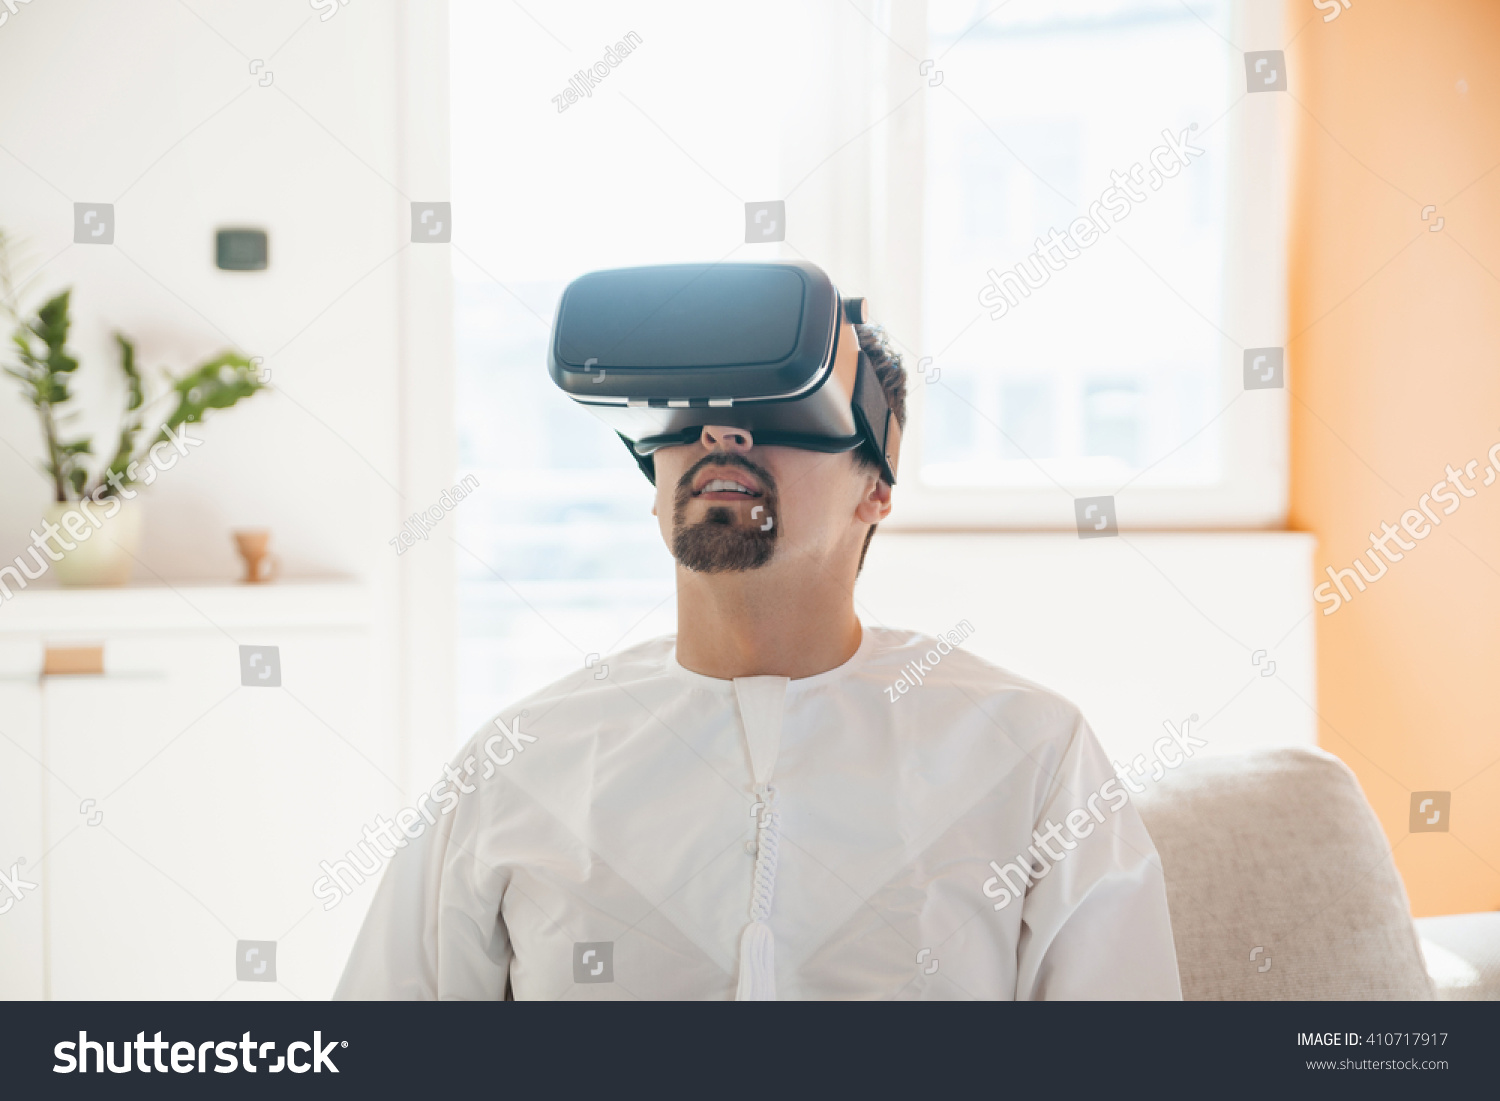 0a1542706b6 Arabian Man Using VR Headset Home Stock Photo (Edit Now) 410717917 ...